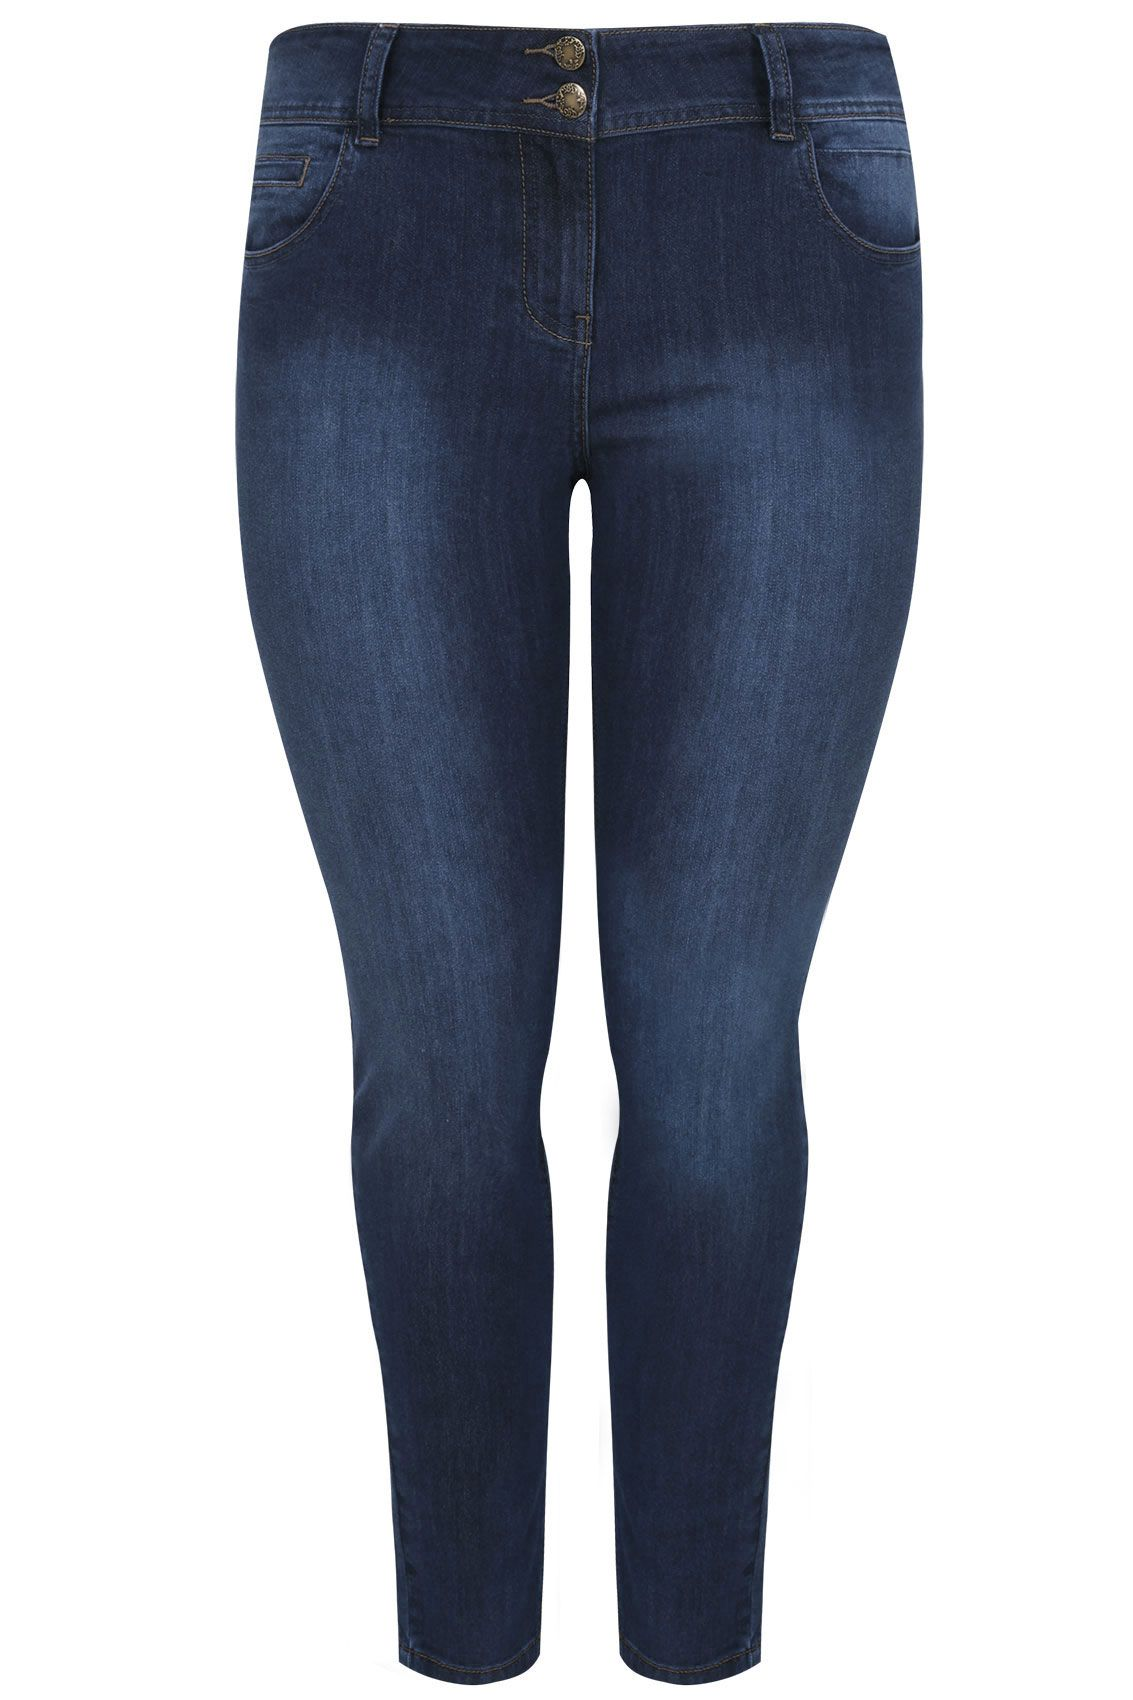 dcc3f2b322c Indigo Skinny SHAPER AVA Jeans Available in 30